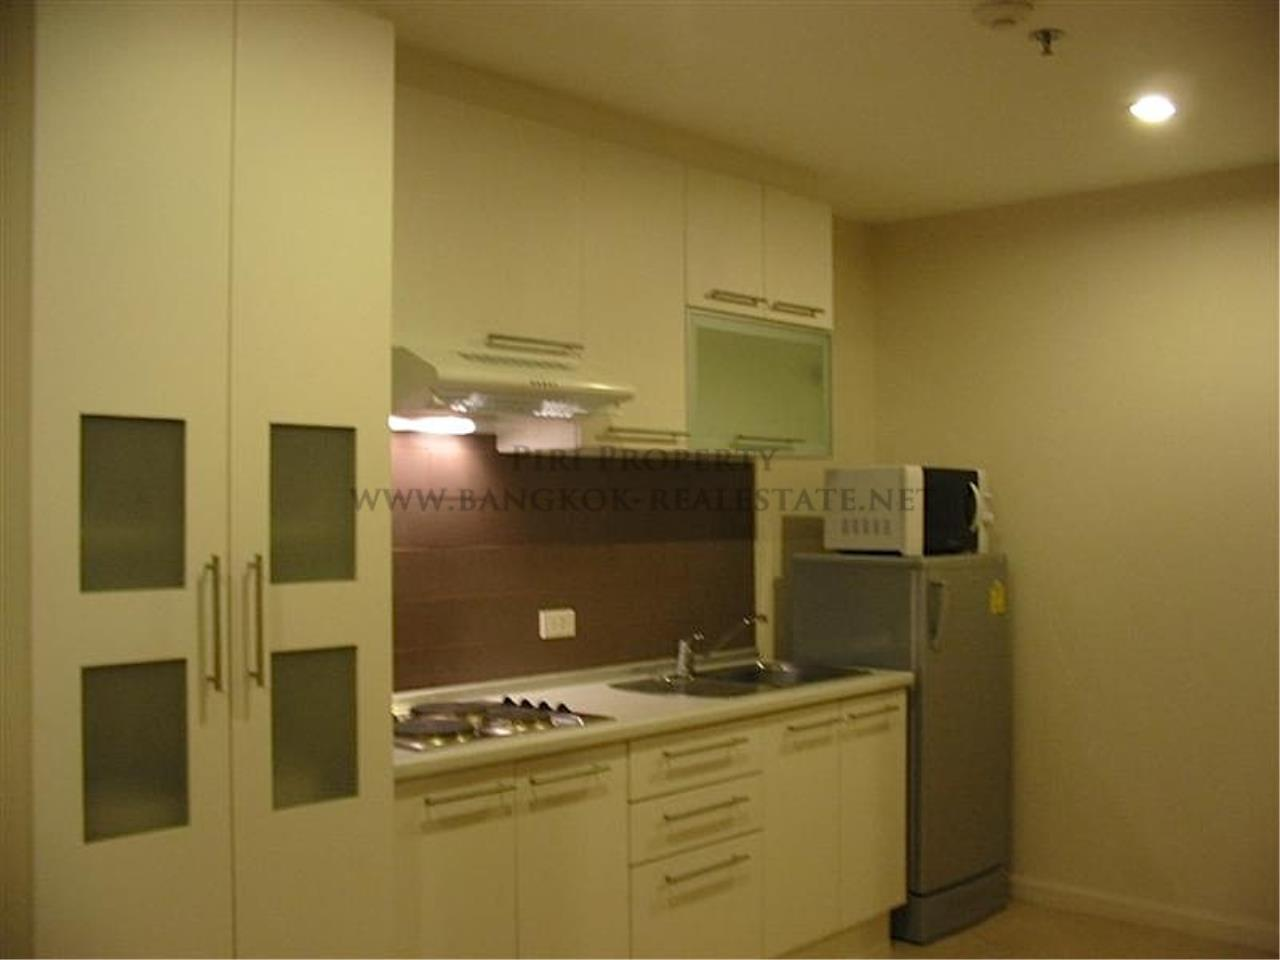 Piri Property Agency's Condo in High Rise Building in Asoke 3